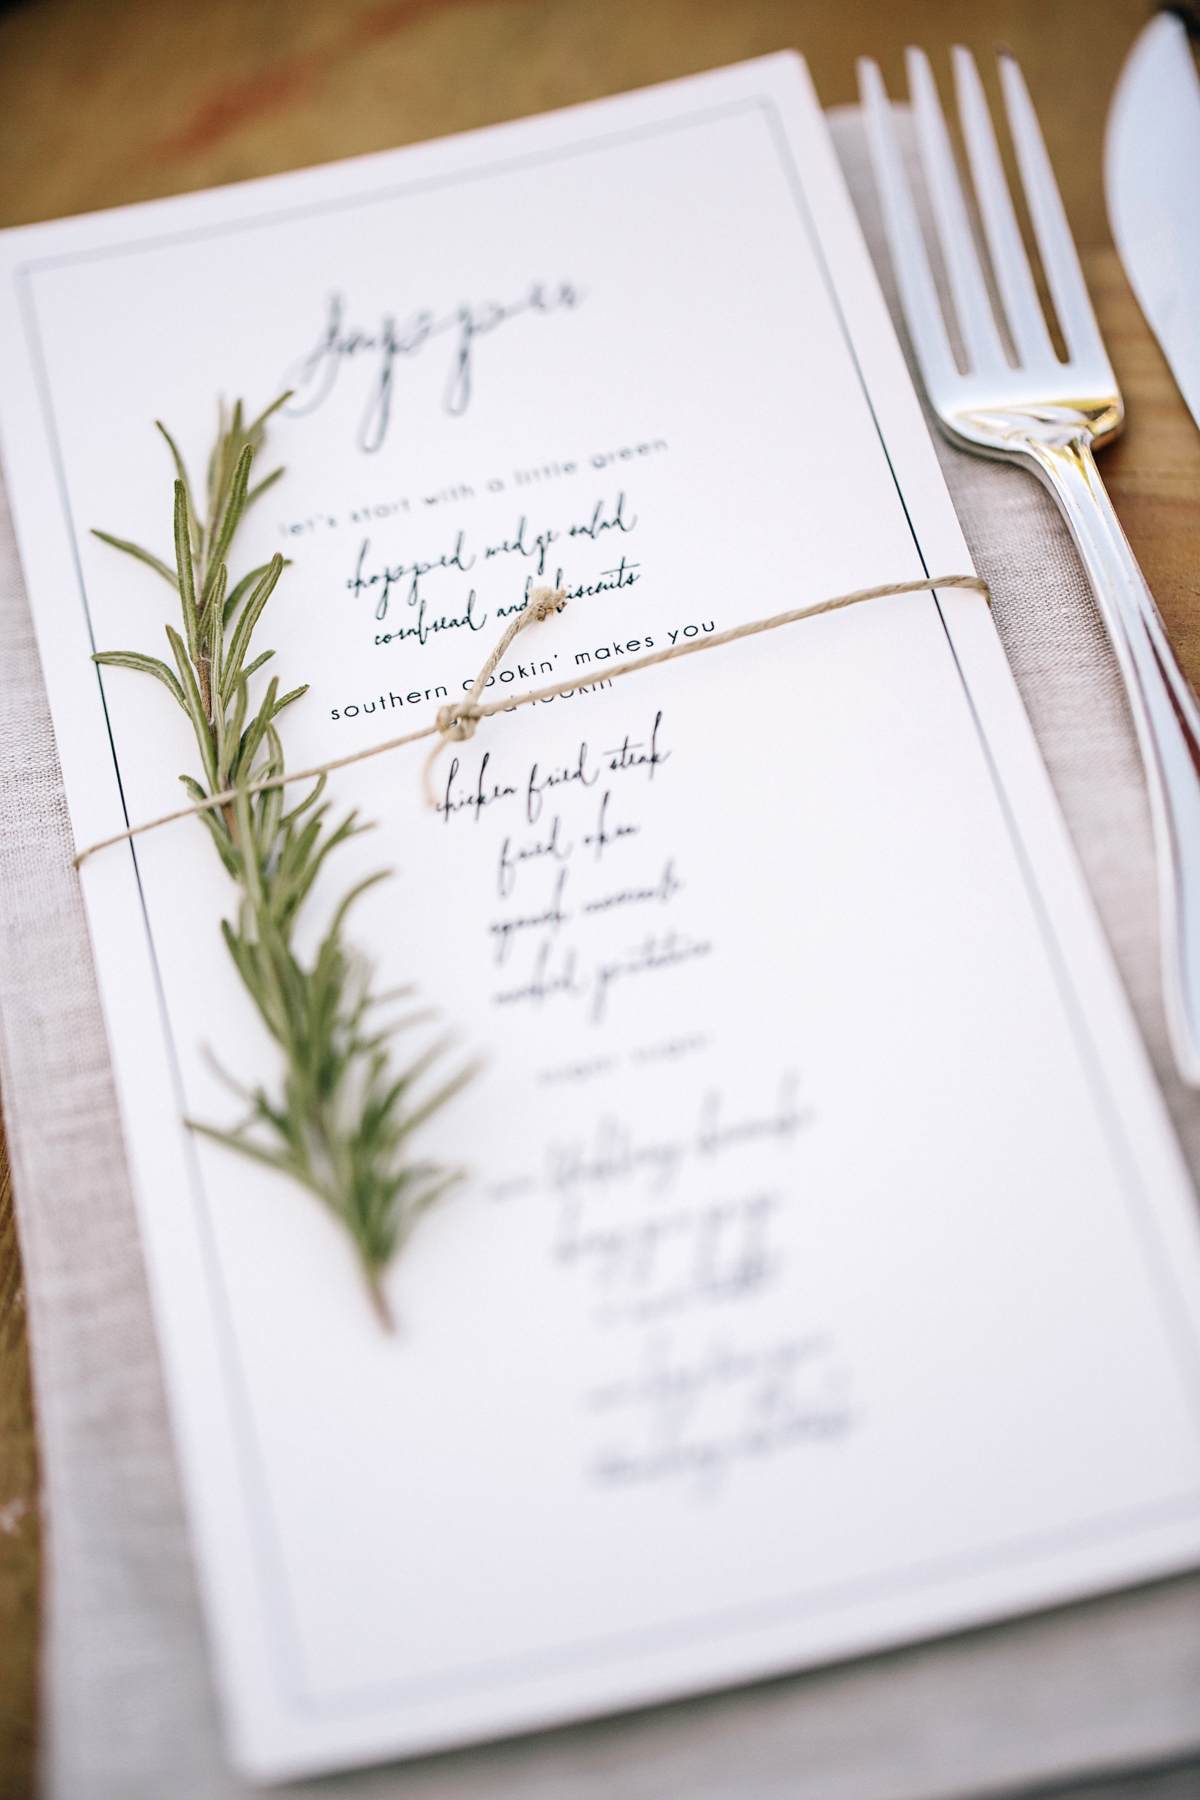 Creative And Unique Wedding Reception Menu Designs